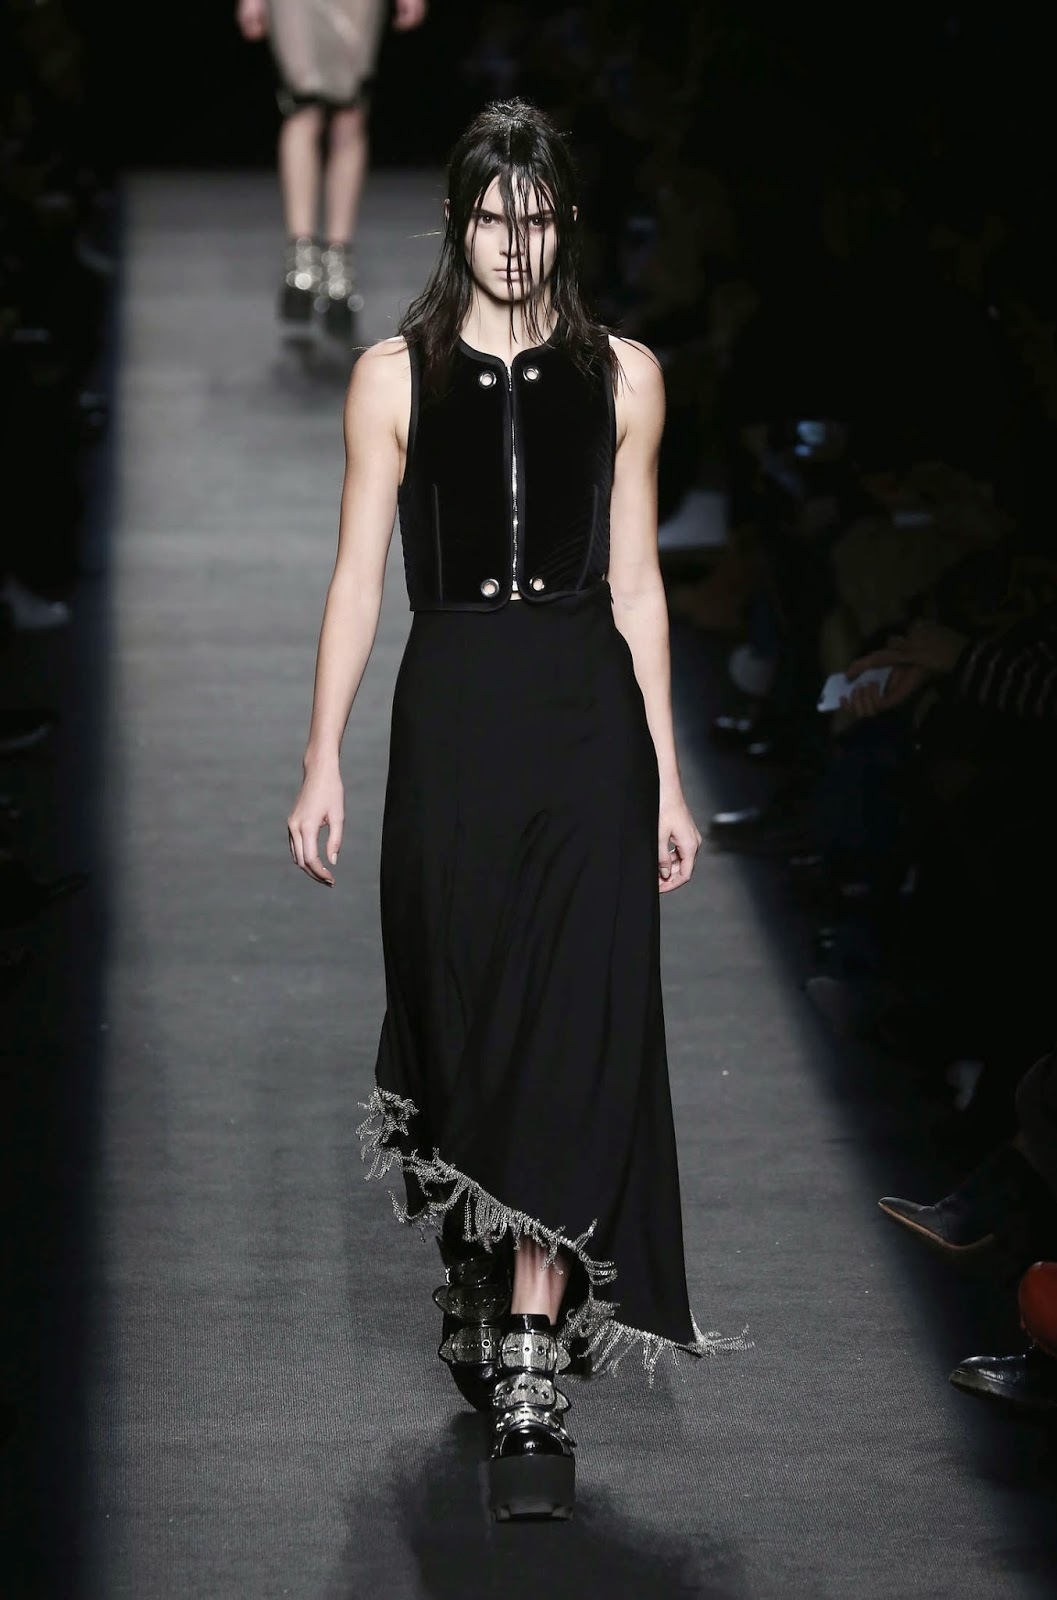 Kendall Jenner walks the Alexander Wang Fall/Winter 2015 Fashion Show in a gothic attire